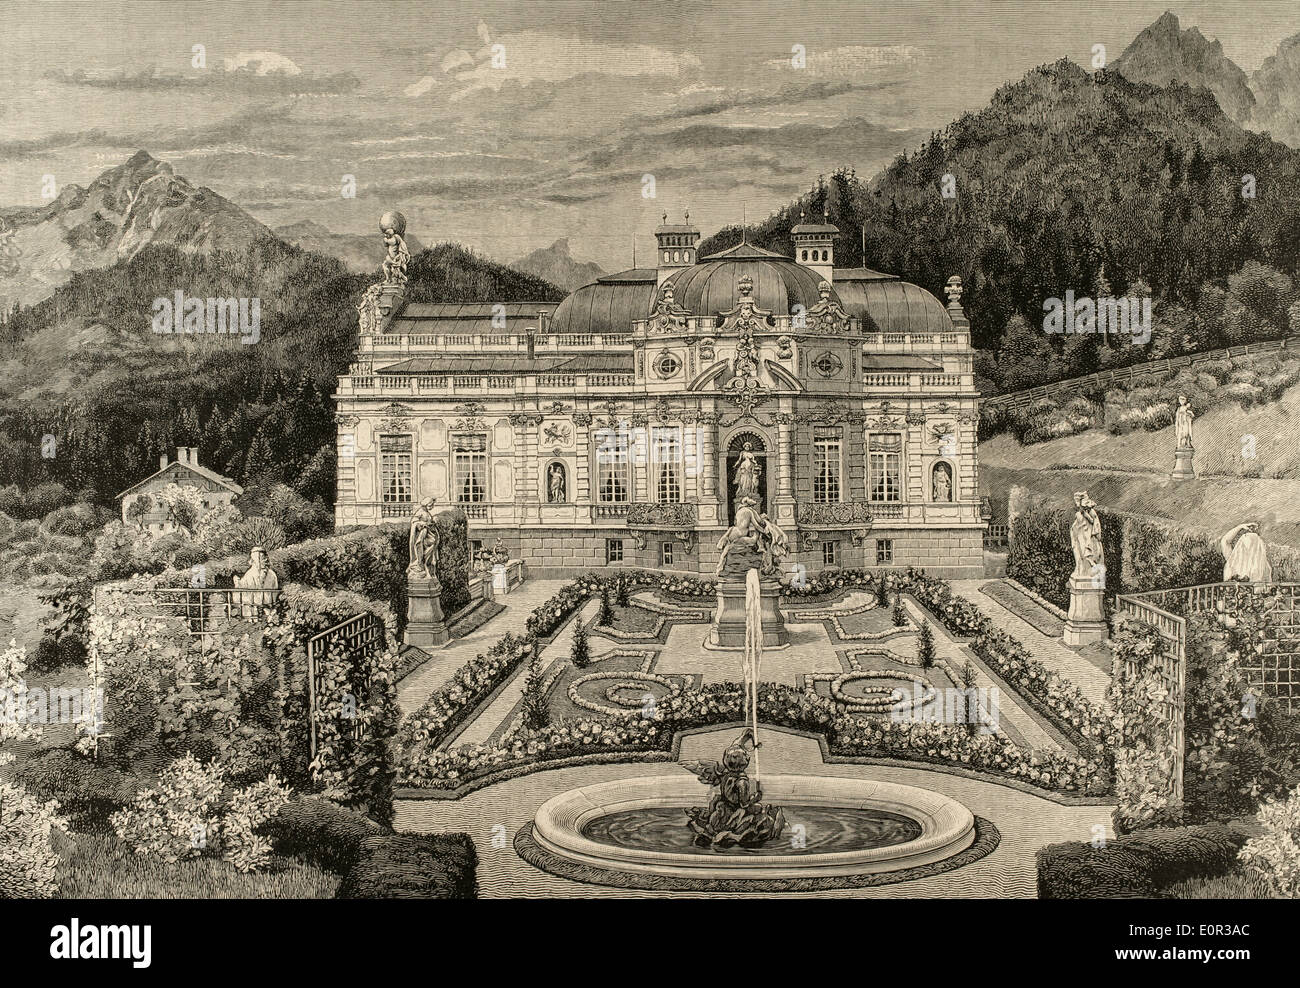 Ludwig II of Bavaria (1845-1886). King of Bavaria. Palace of Linderhof. Engraving. - Stock Image